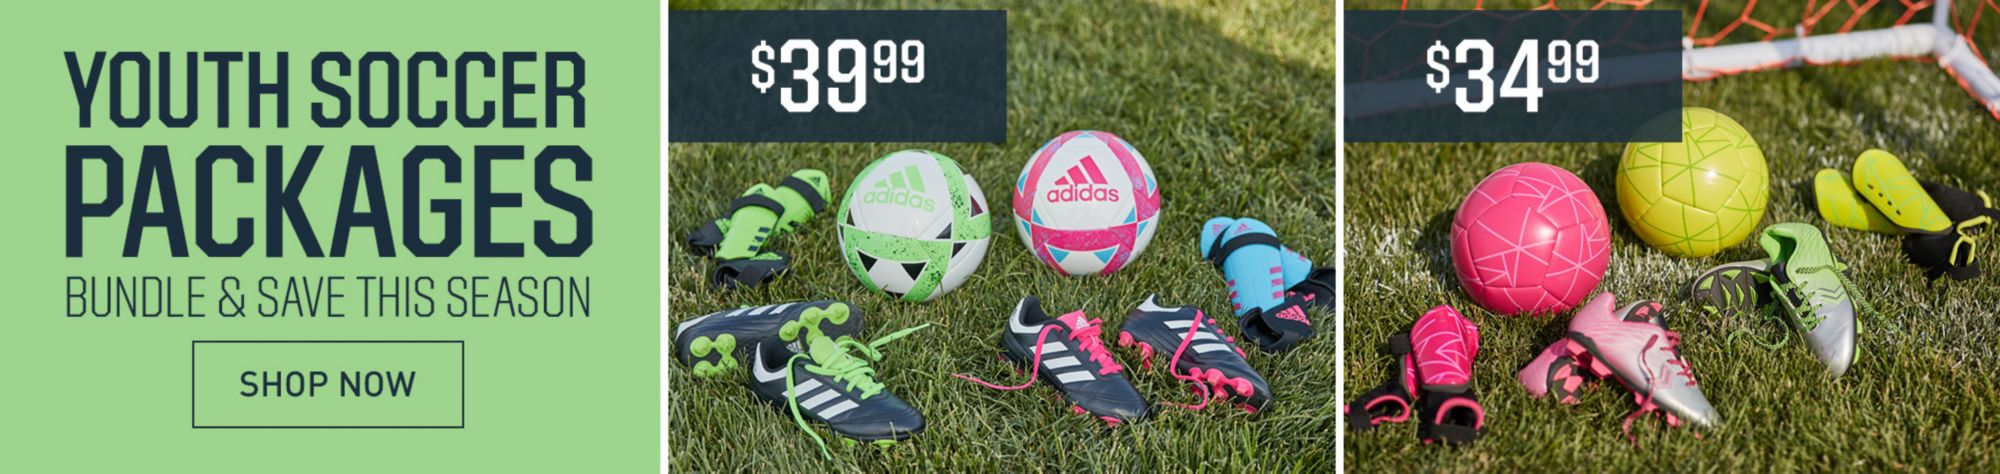 5a996920f YOUTH SOCCER PACKAGES Bundle and Save this Soccer Season